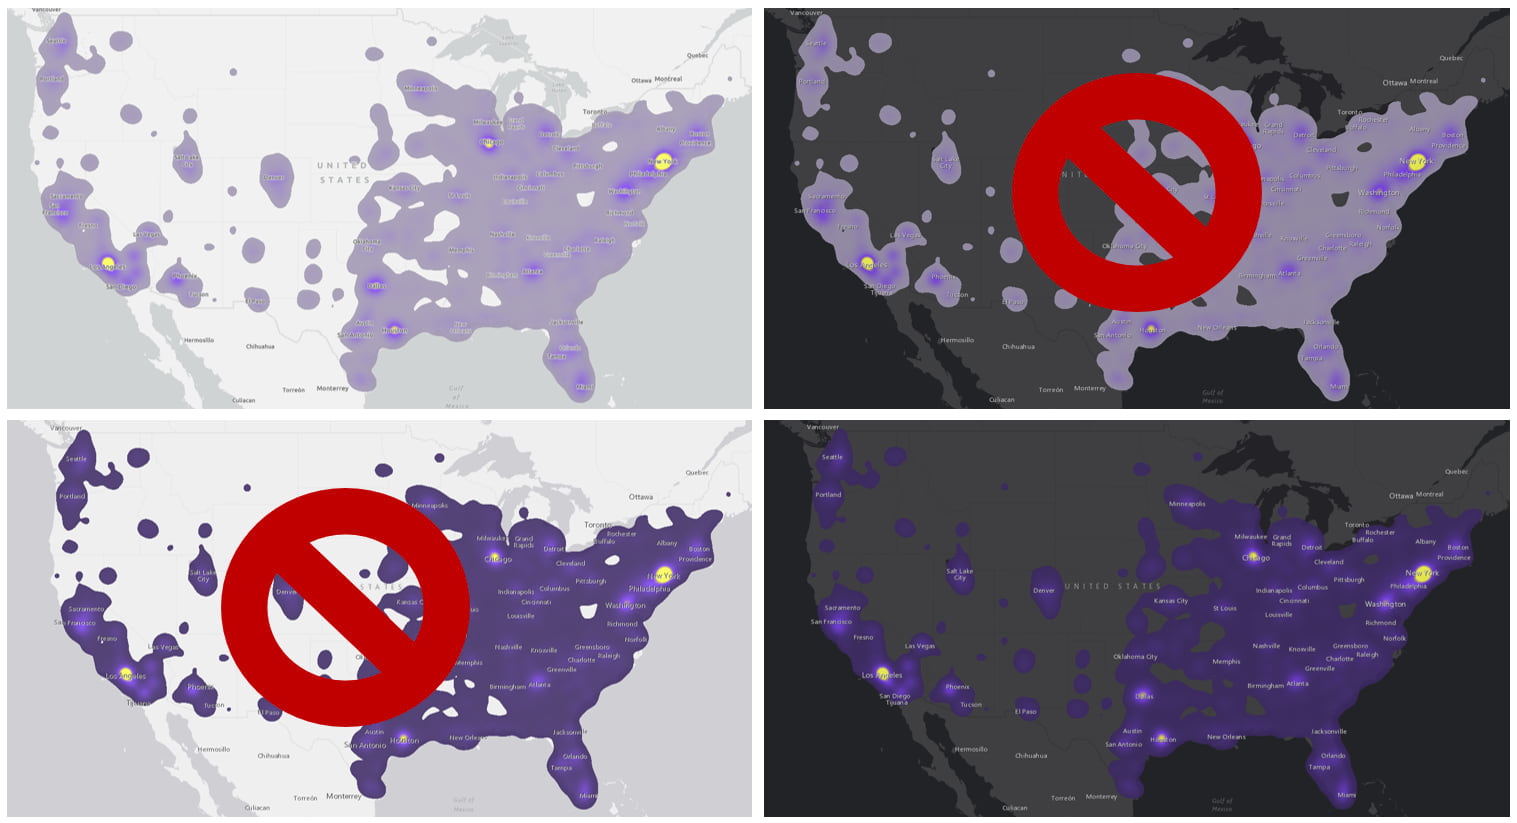 4 maps: 2 with light purple-to-yellow color ramp, 1 on light basemap, 1 on dark (with red x superimposed); 2 with dark purple-to-yellow color ramp, 1 on light basemap (with red x superimposed), 1 on dark.